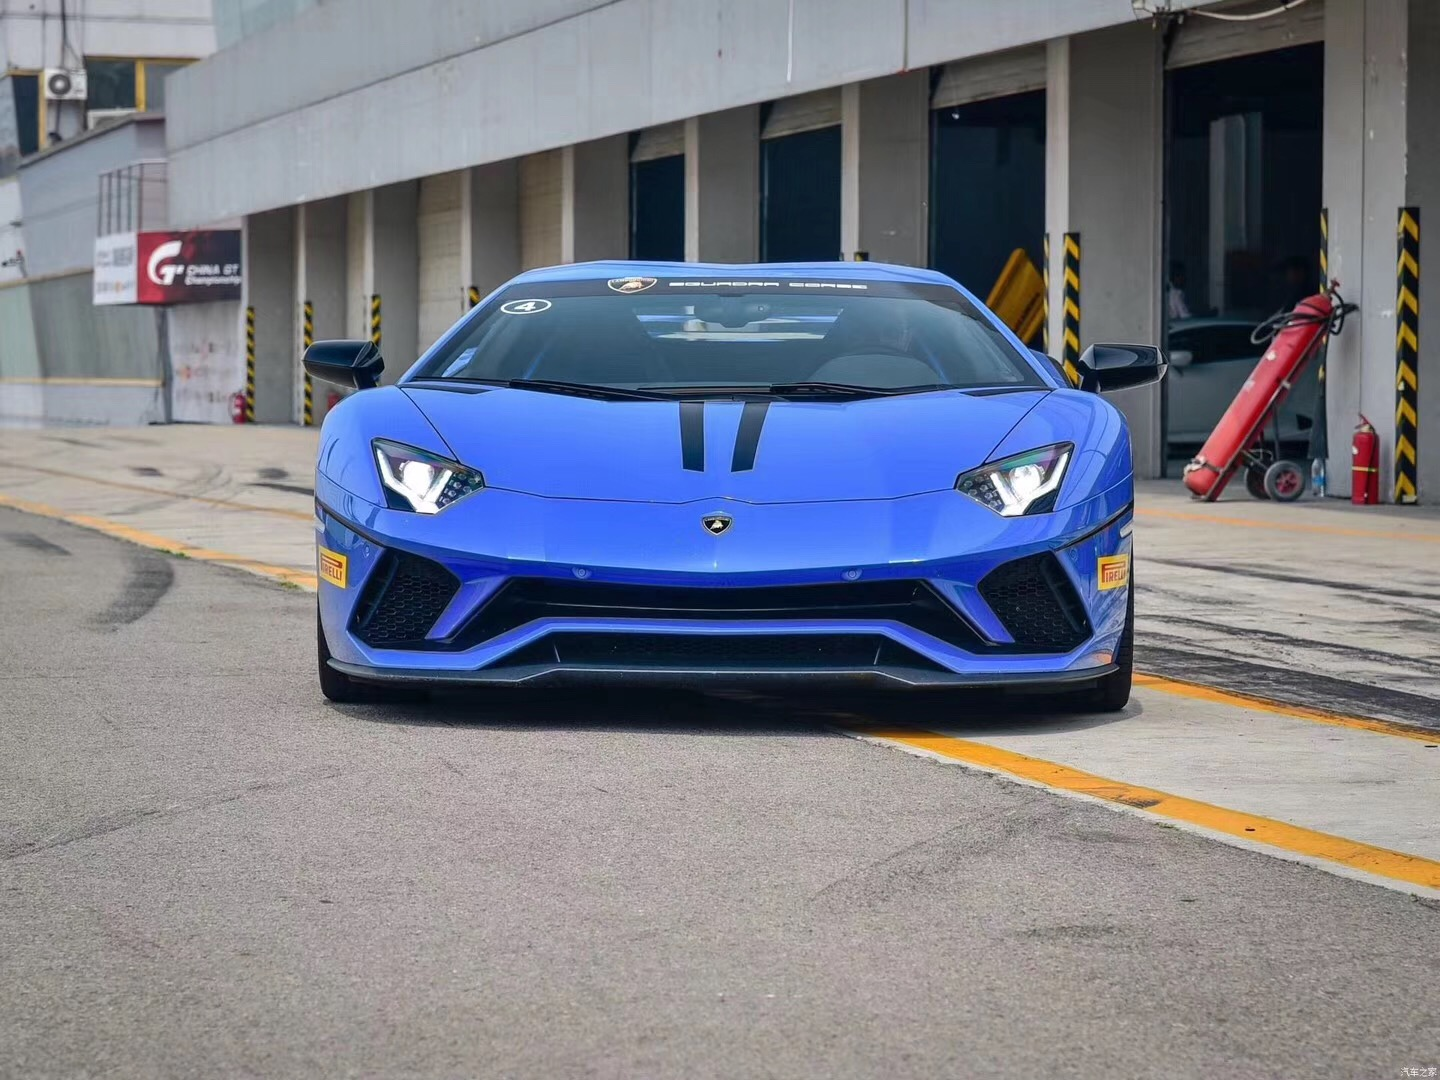 Lamborghini 700 update Lp740S front bumper rear lip